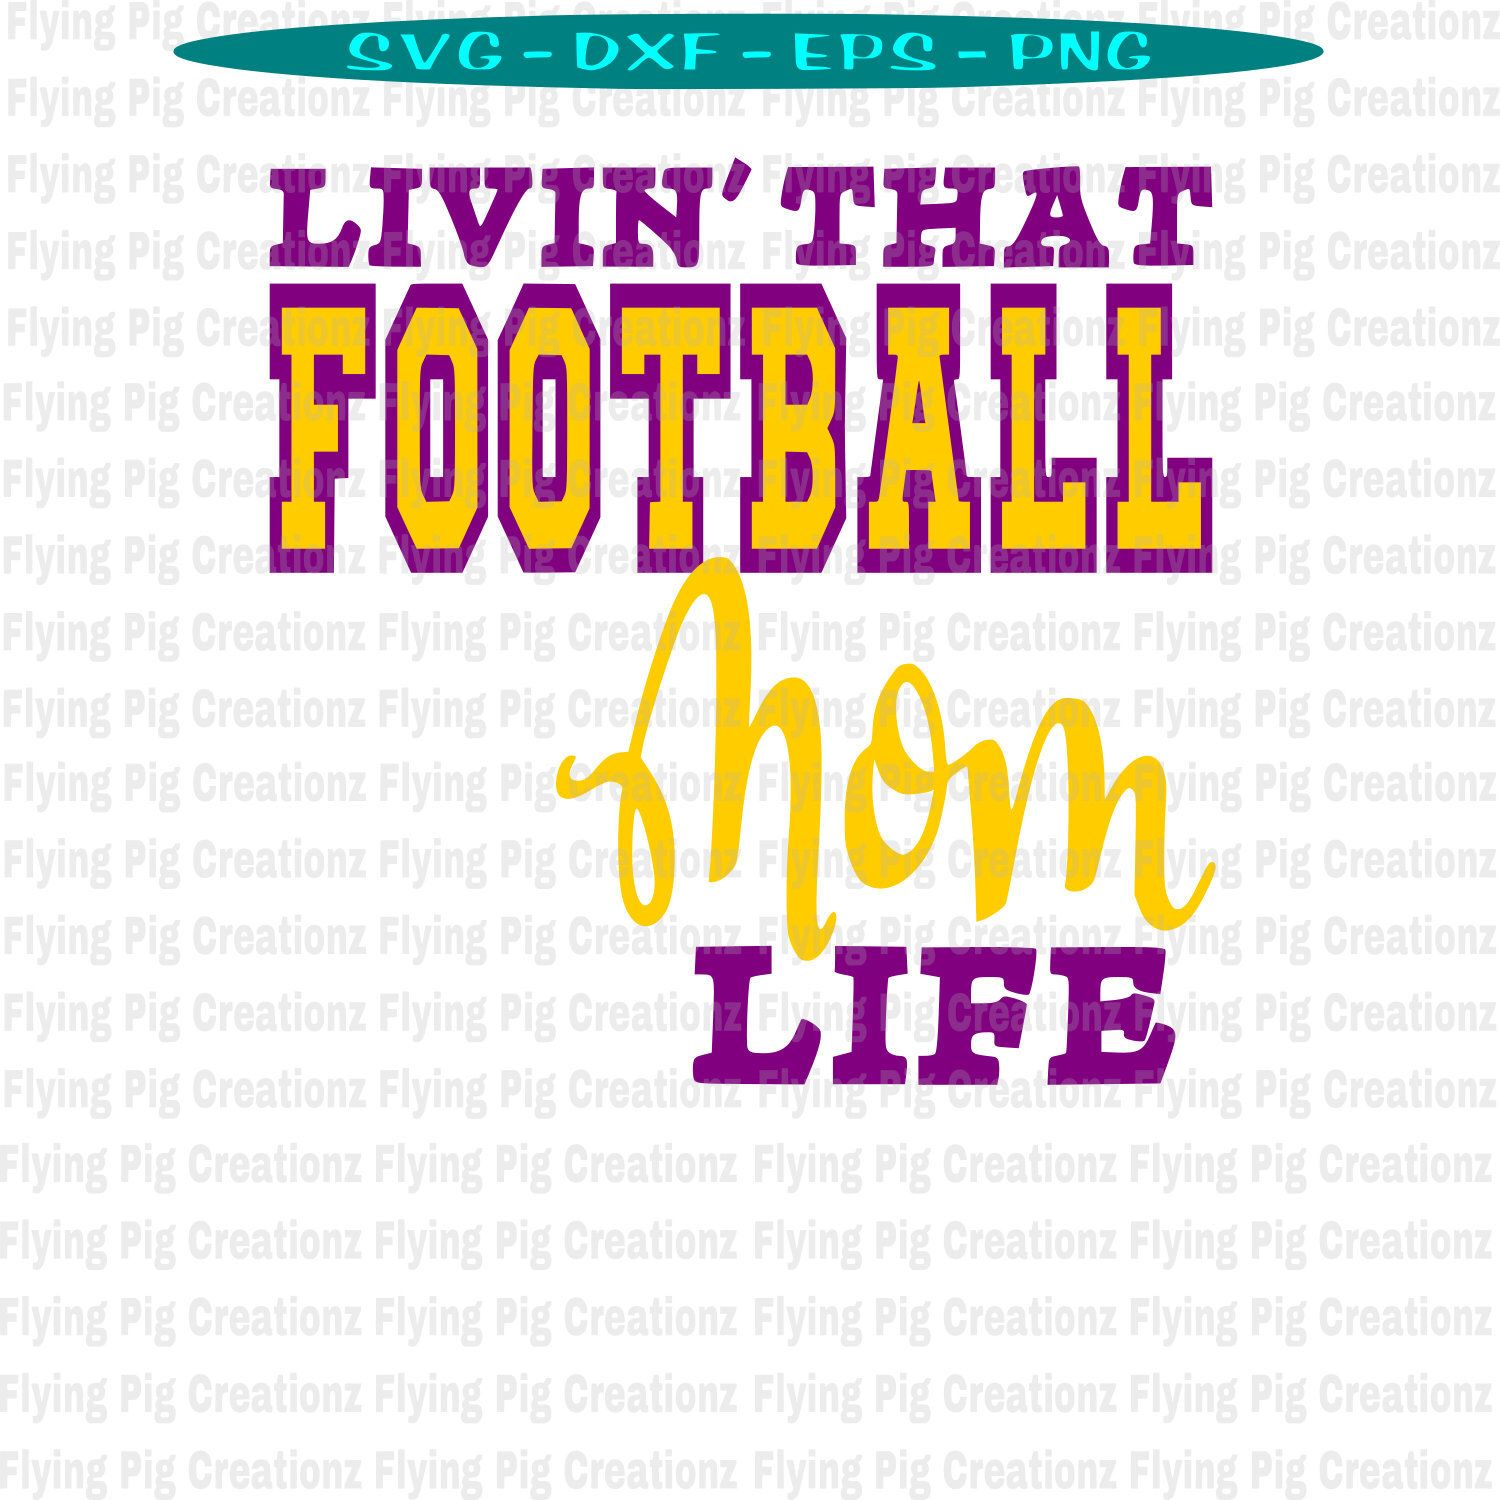 png freeuse download Living clipart mascot. Livin that football mom.